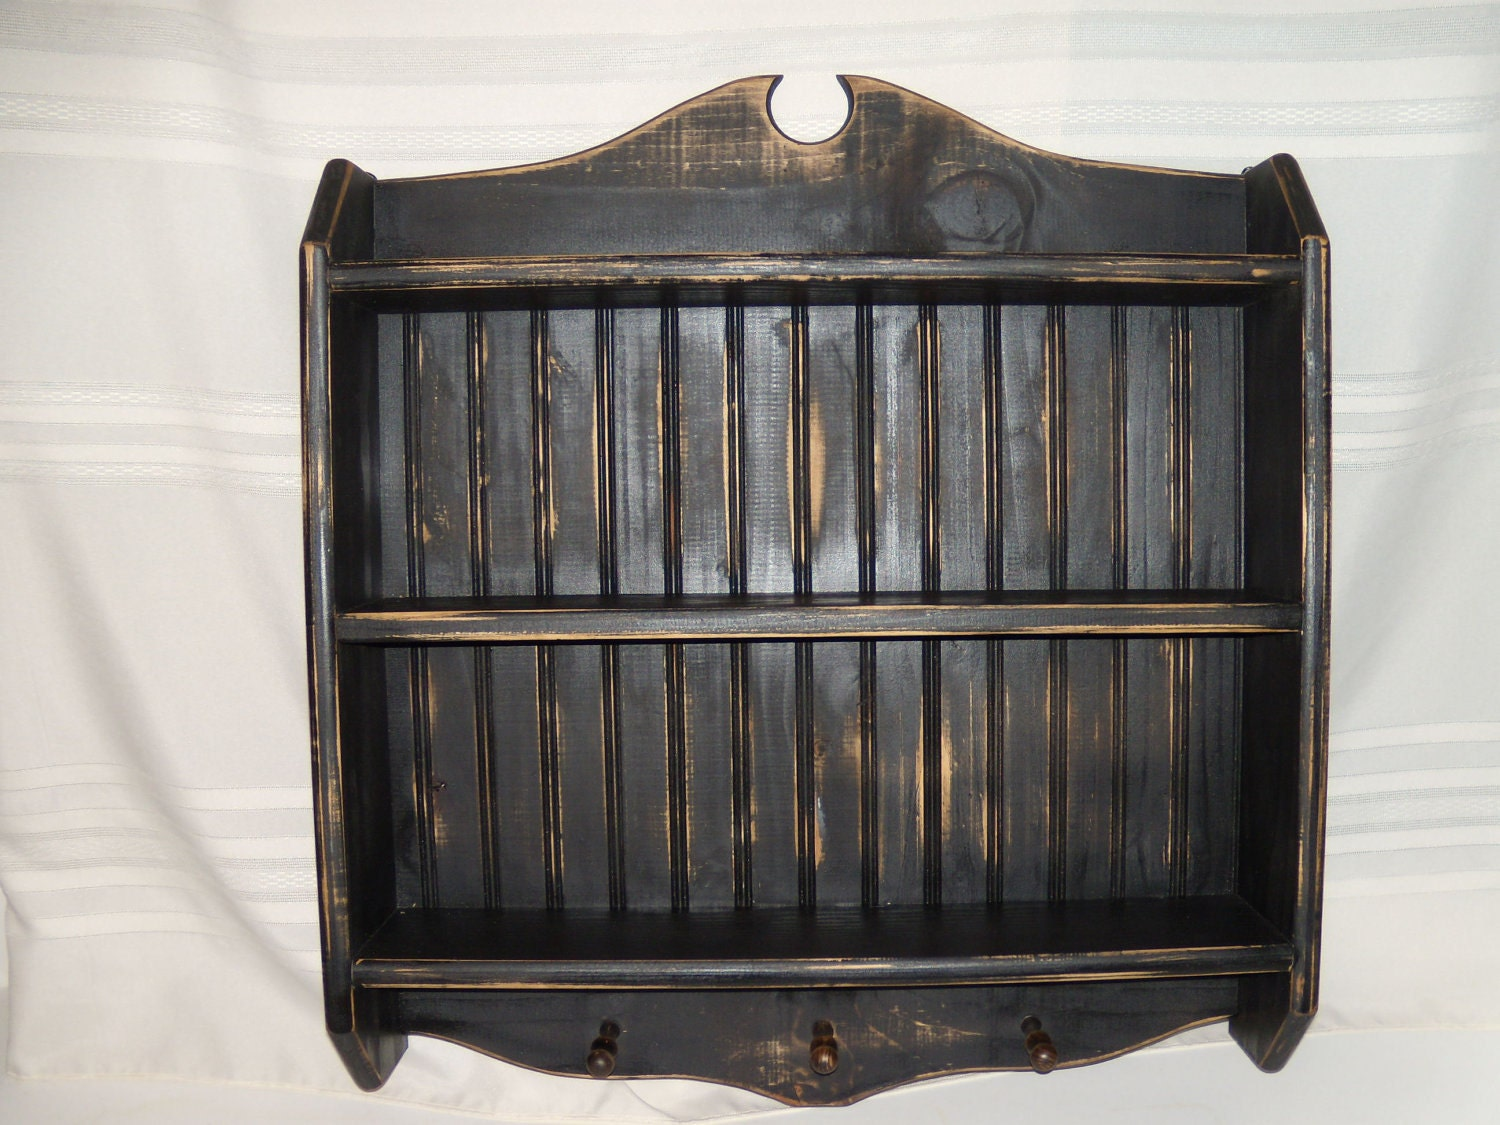 Very Impressive portraiture of Black antiqued wall shelf with pegs and bead by MMWoodworking with #81674A color and 1500x1125 pixels